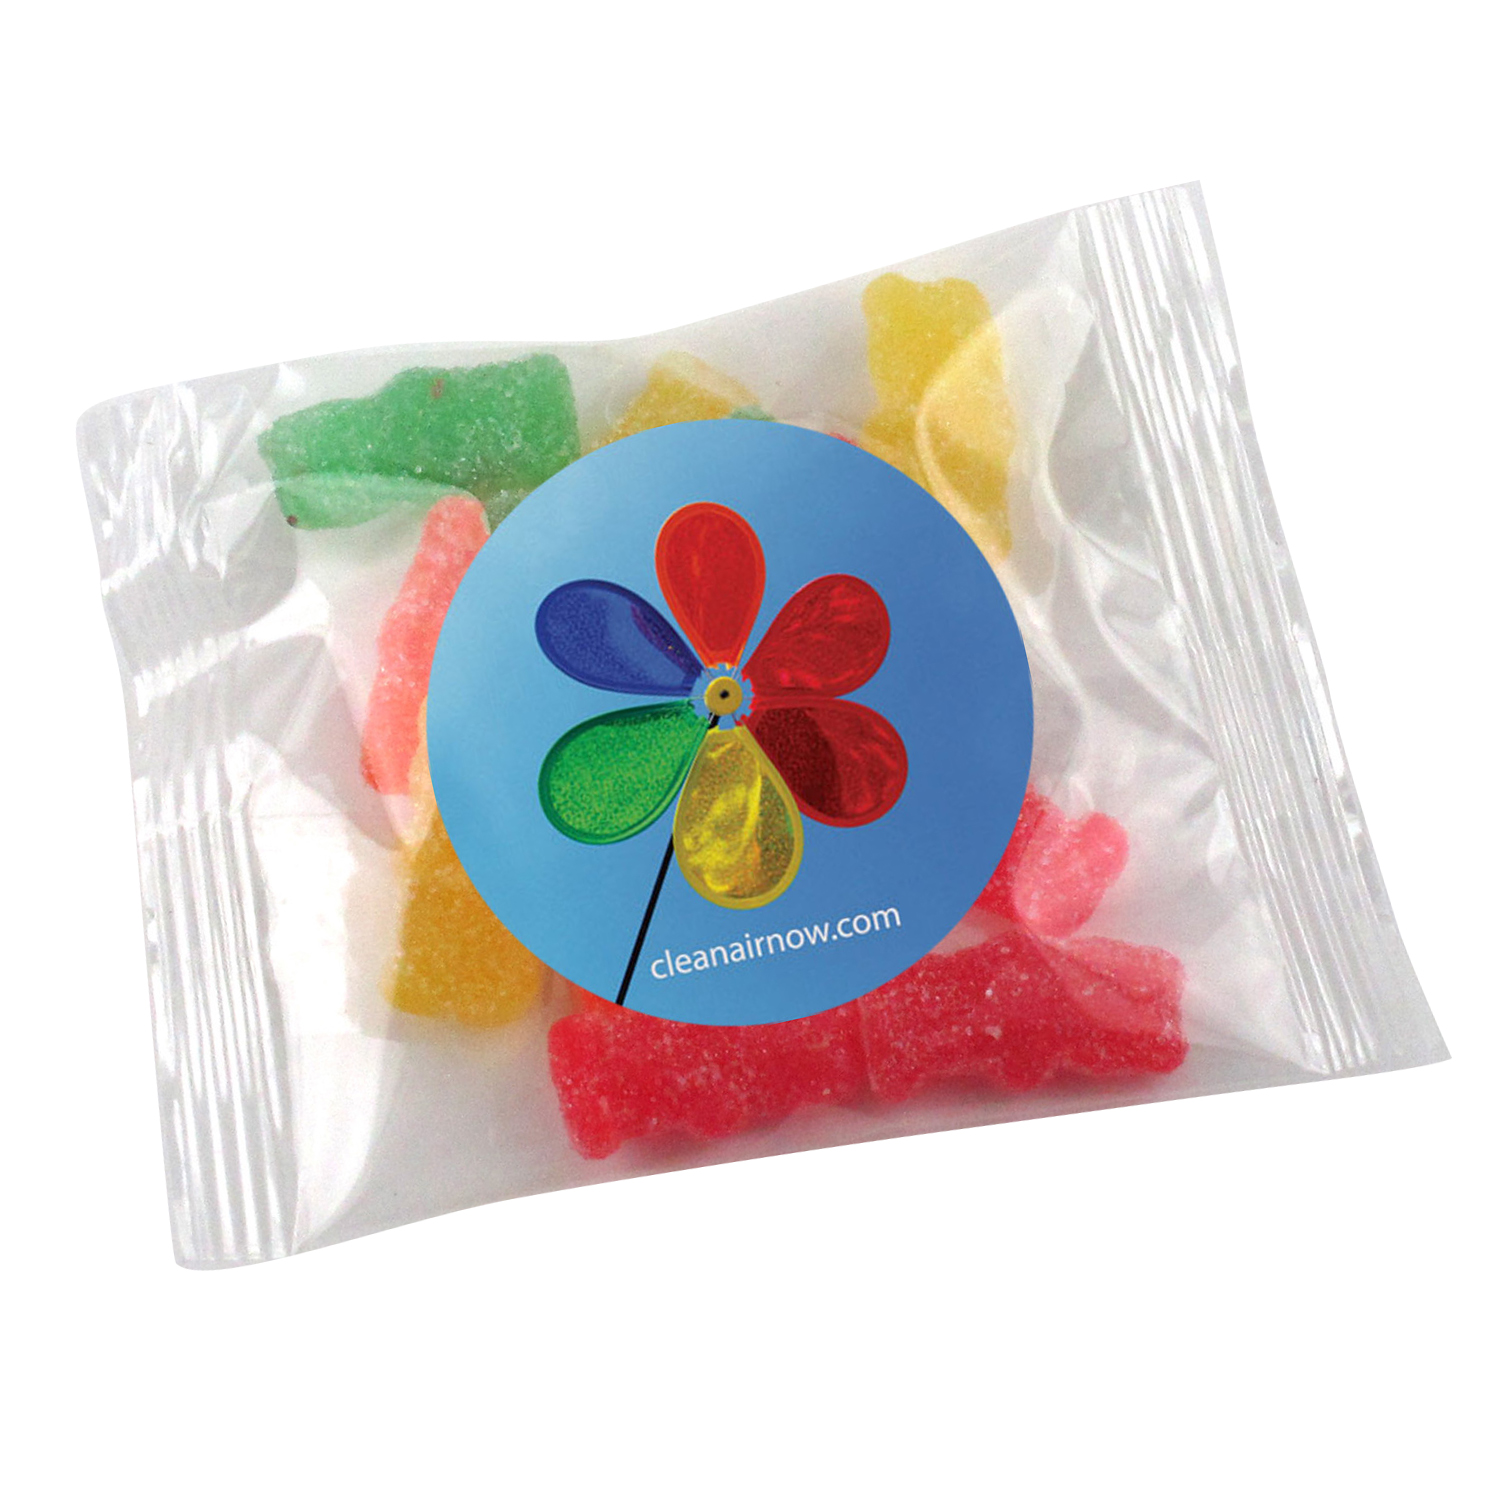 1 Oz. Goody Bag Sour Patch Kids, GB-SPK, Full Colour Imprint